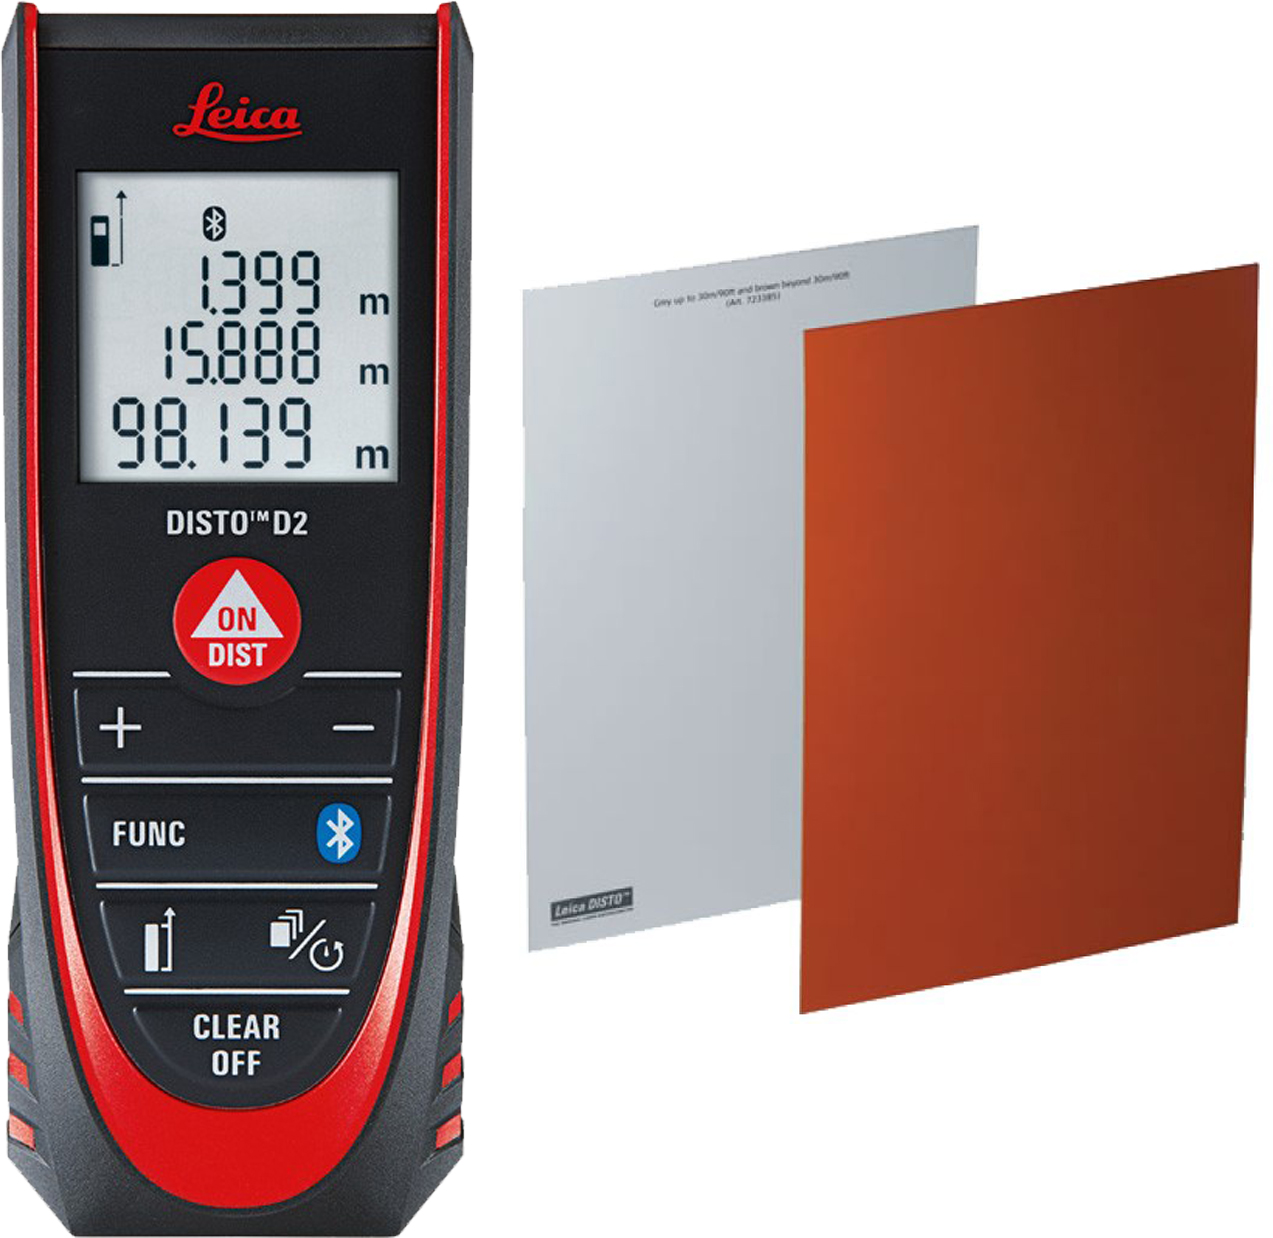 Leica DISTO D2 Laser Distance Meter with Bluetooth + GZM26 Target Plate